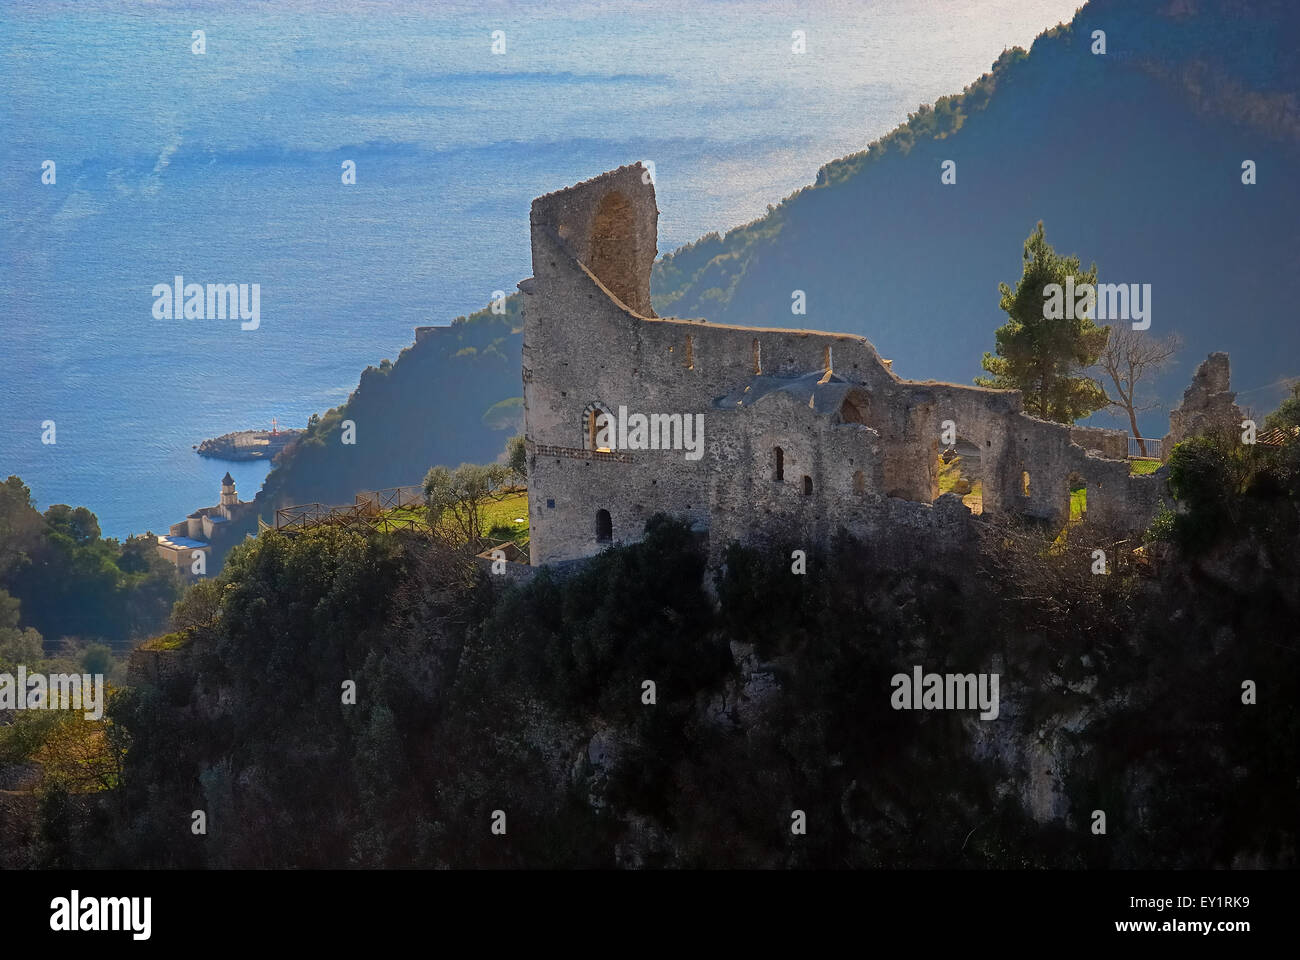 Village of Scala, Costiera Amalfitana, Campania, Italy. Torre dello Ziro (Ziro tower). The Ziro tower is a tower - Stock Image